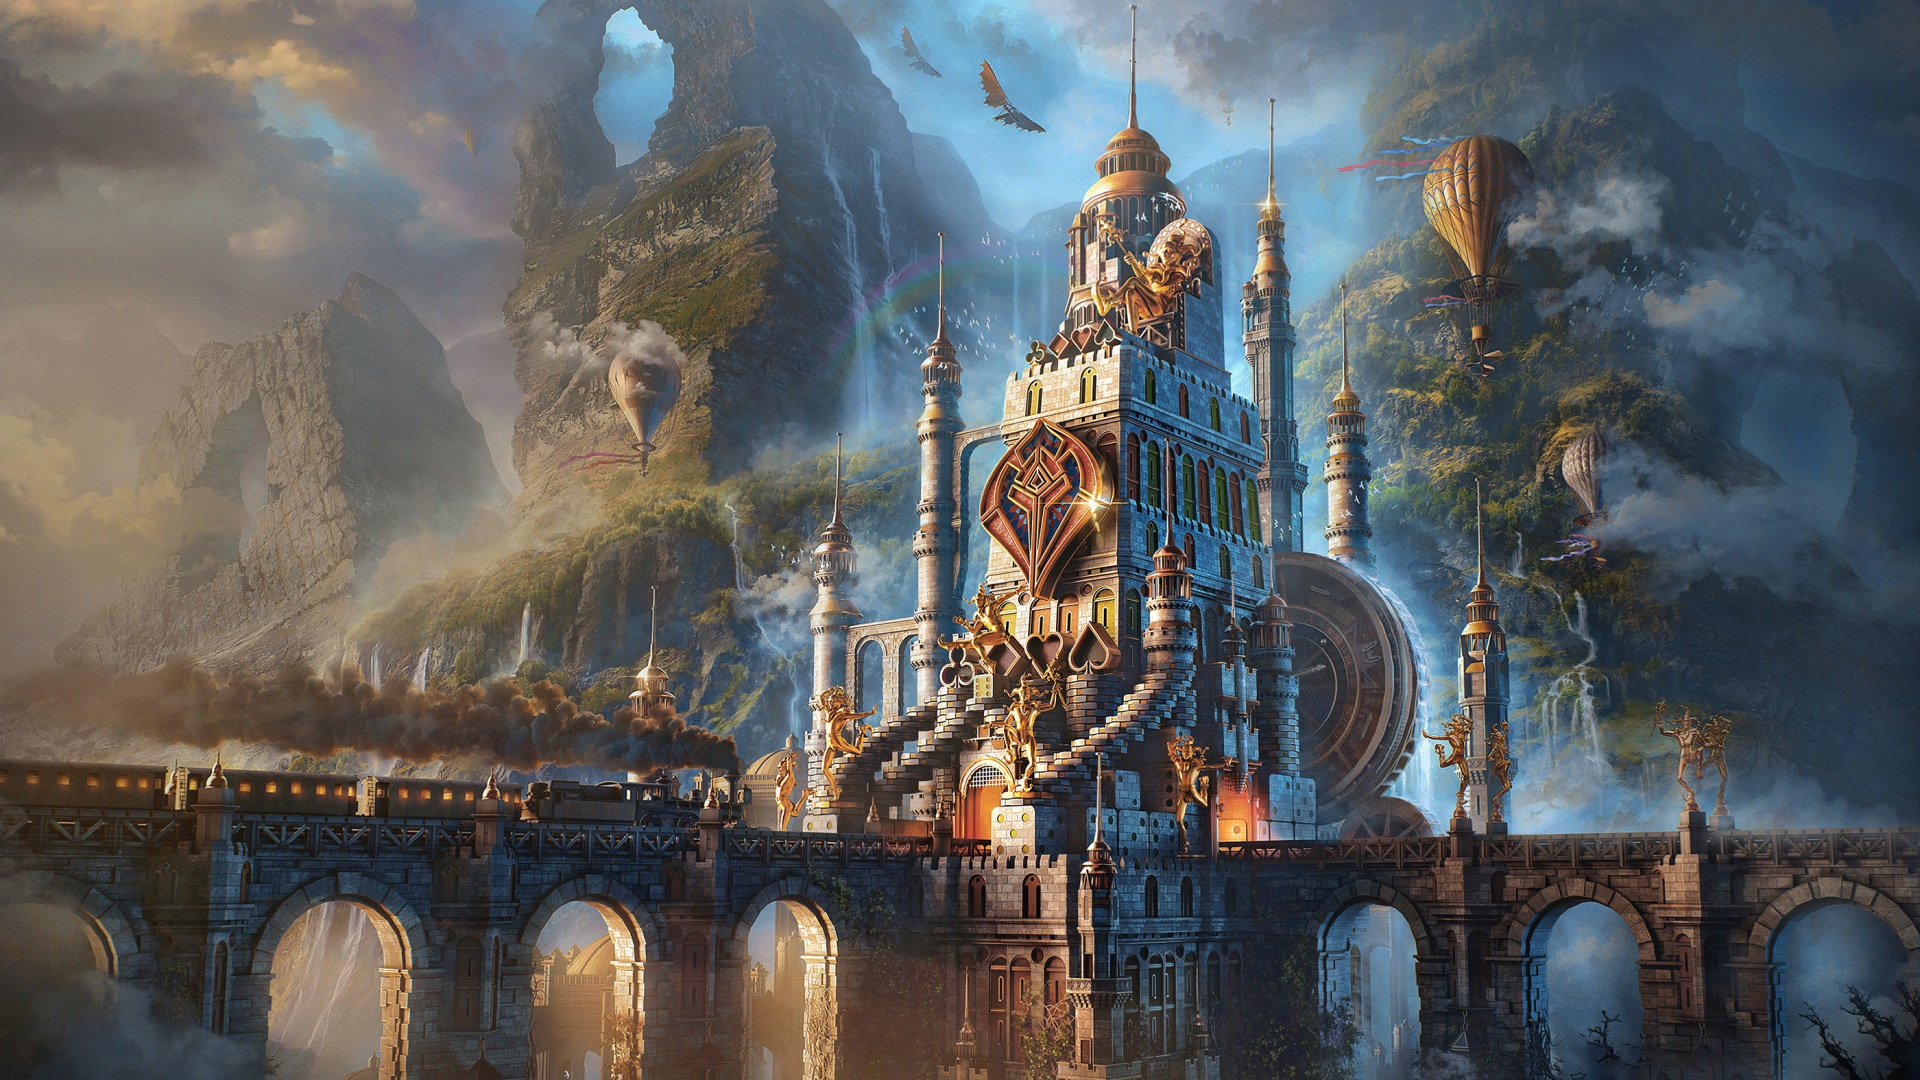 Fantasy Castle with hot air balloons wallpaper